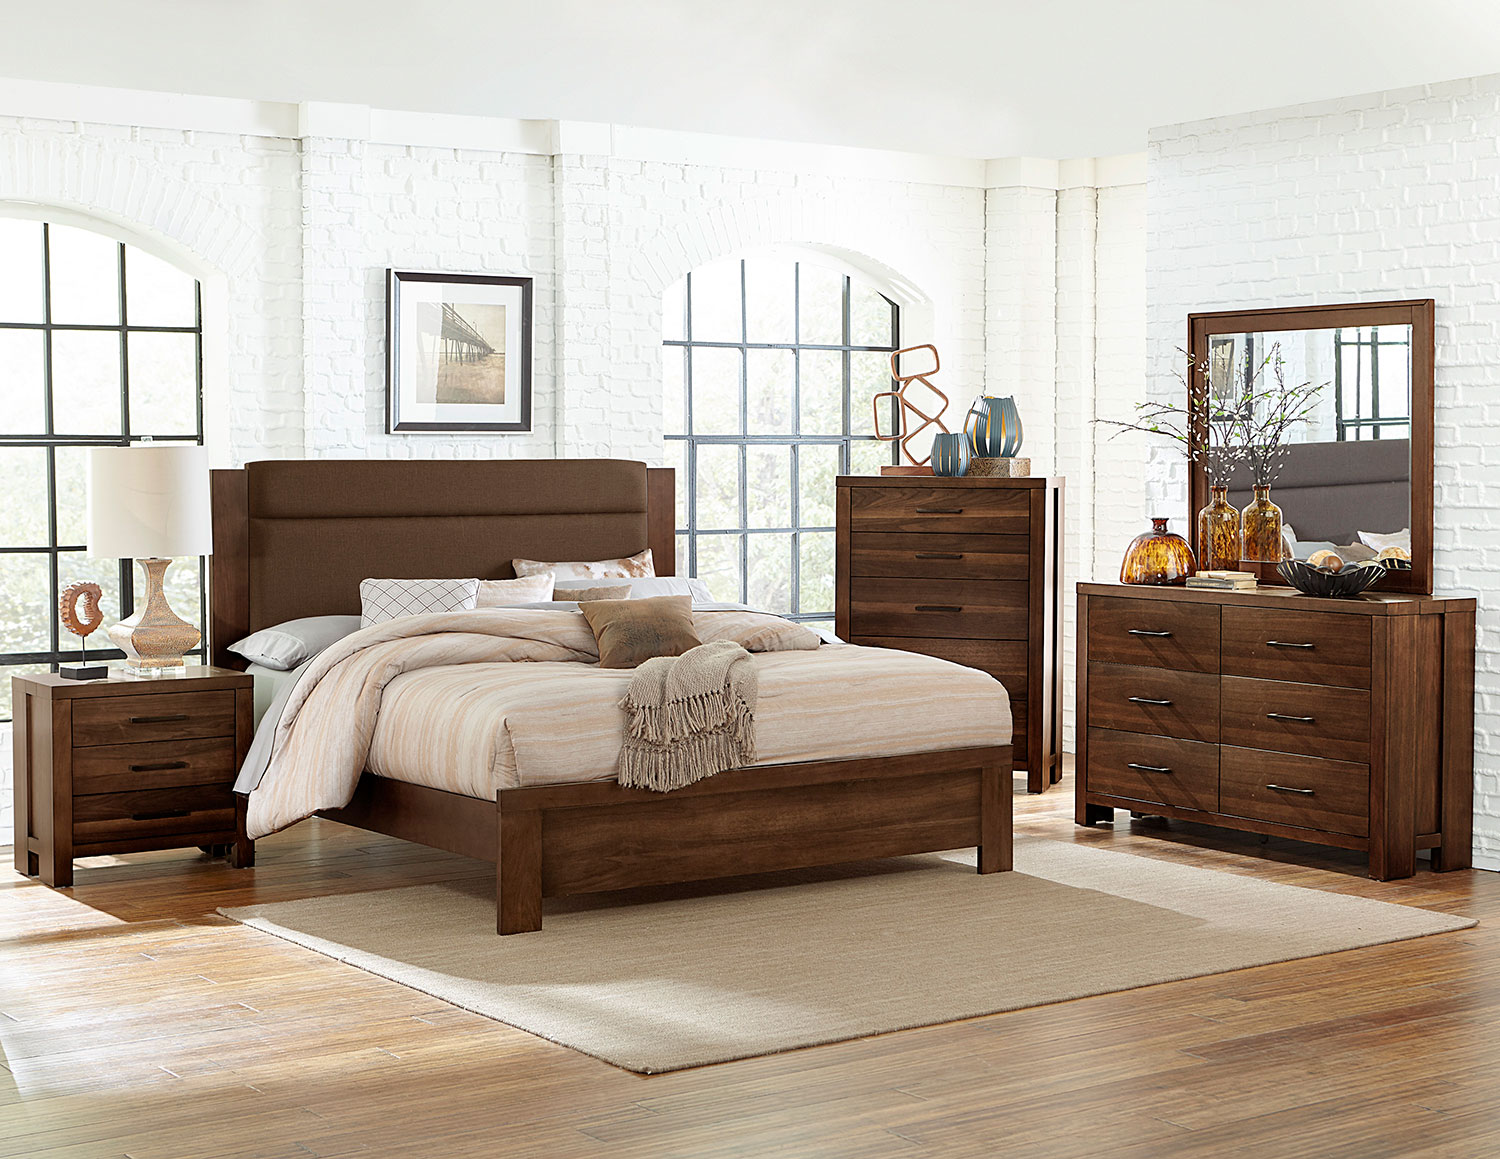 Homelegance Sedley Upholstered Bedroom Set - Walnut